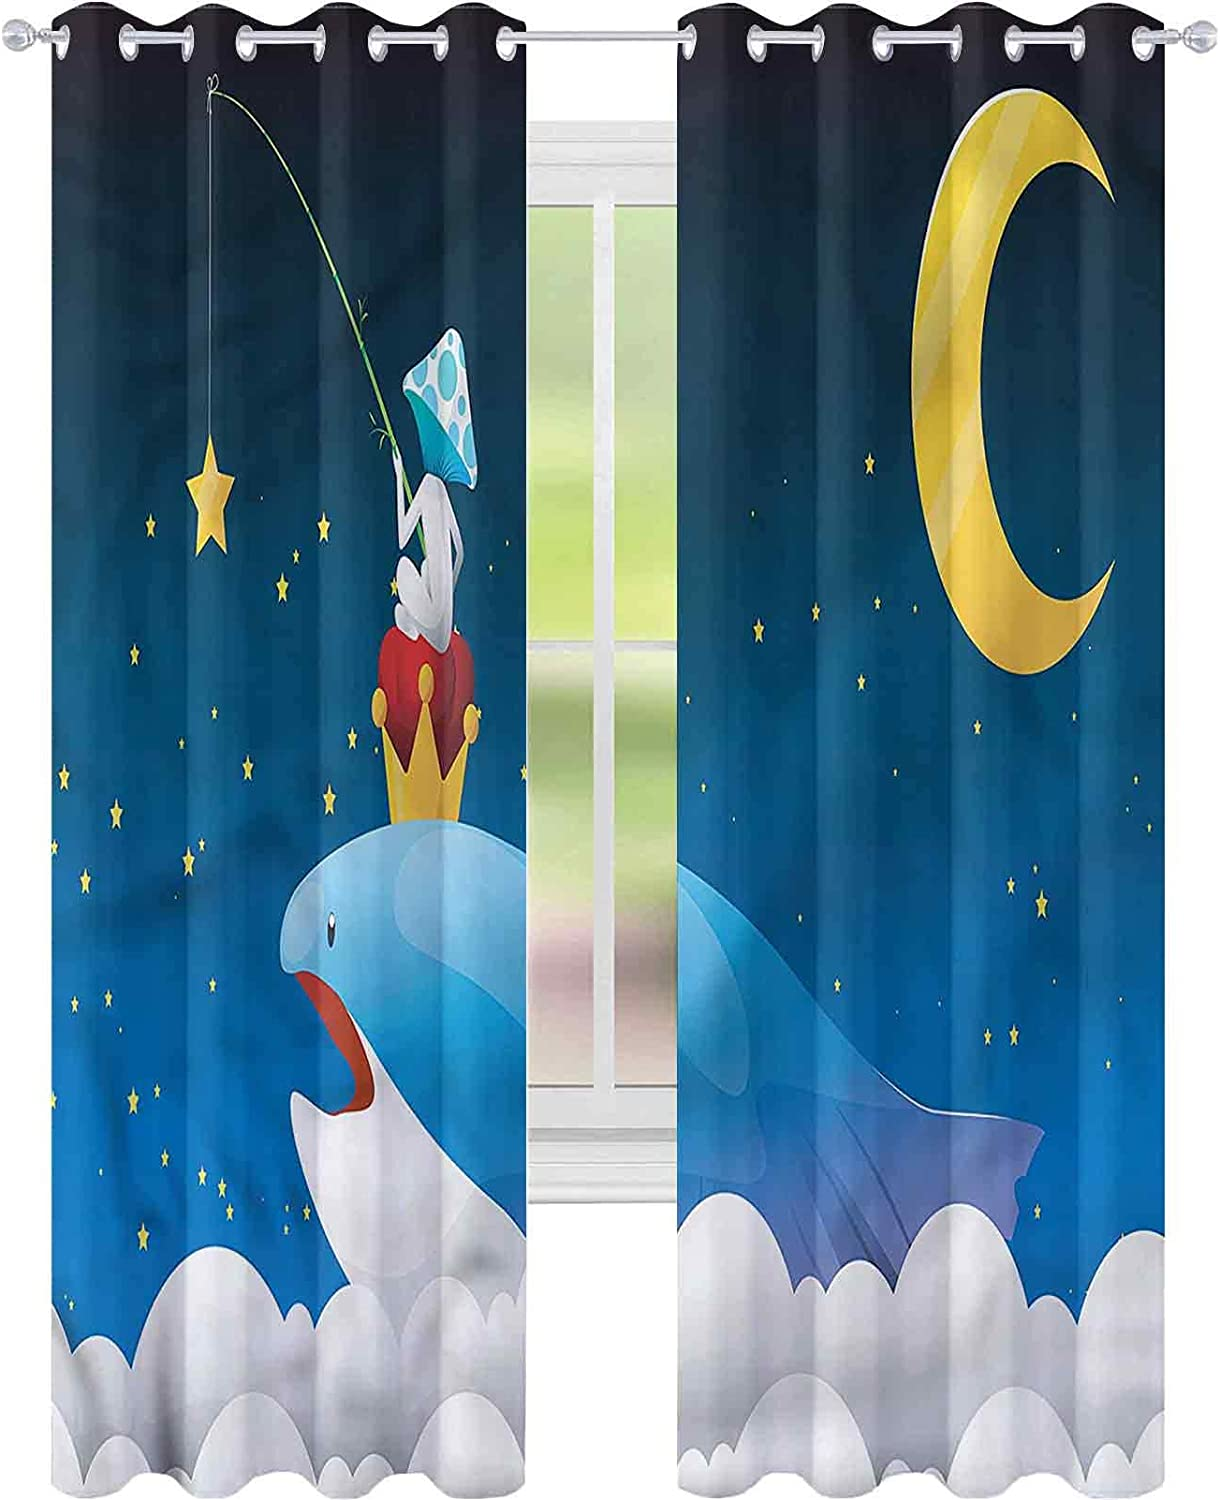 Blackout Window Curtain Whale on Arlington Mall Clouds Moon W52 x for L72 Max 67% OFF